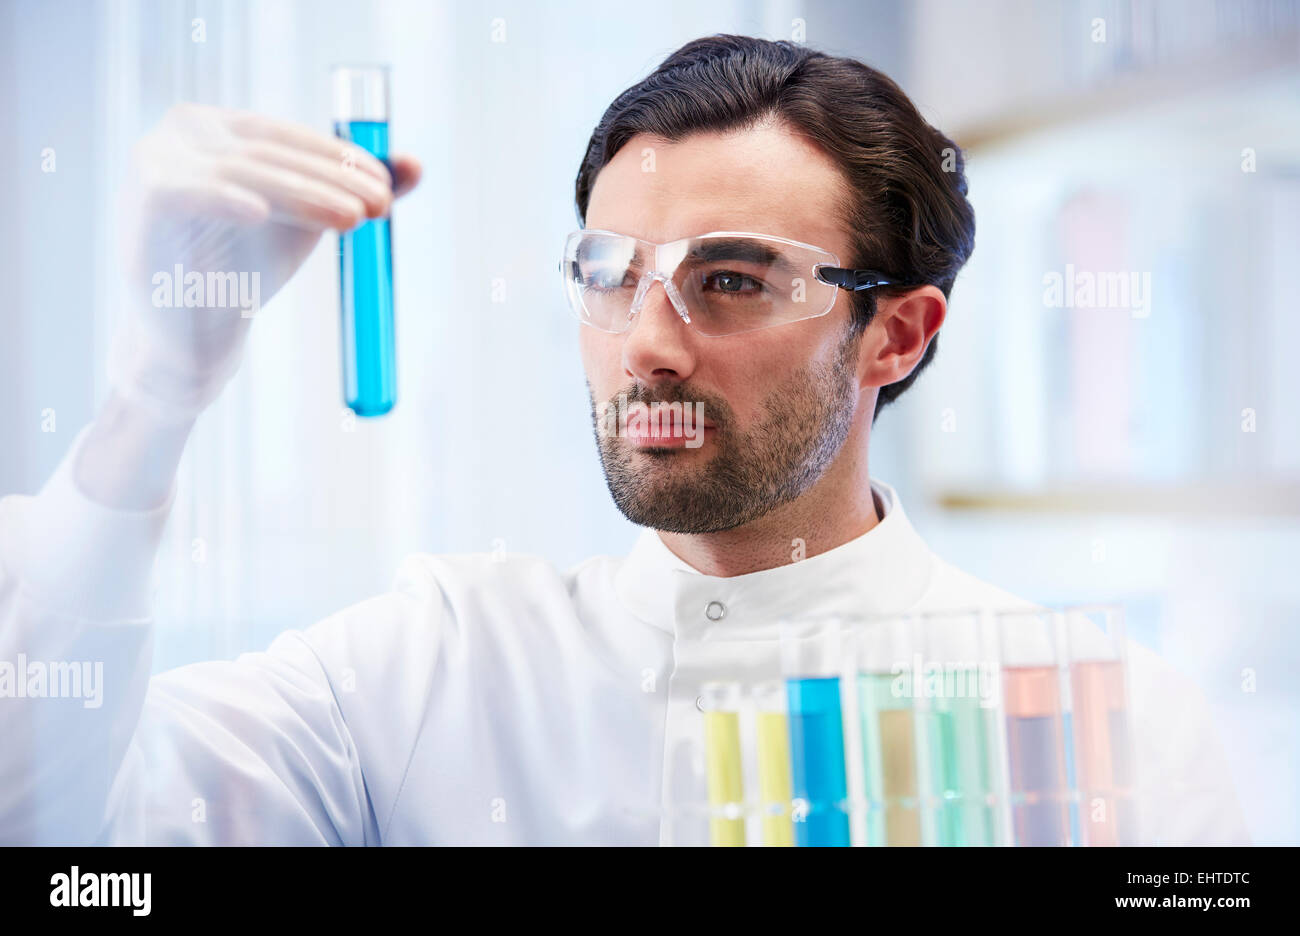 Man in laboratory looking at vial with blue fluid - Stock Image